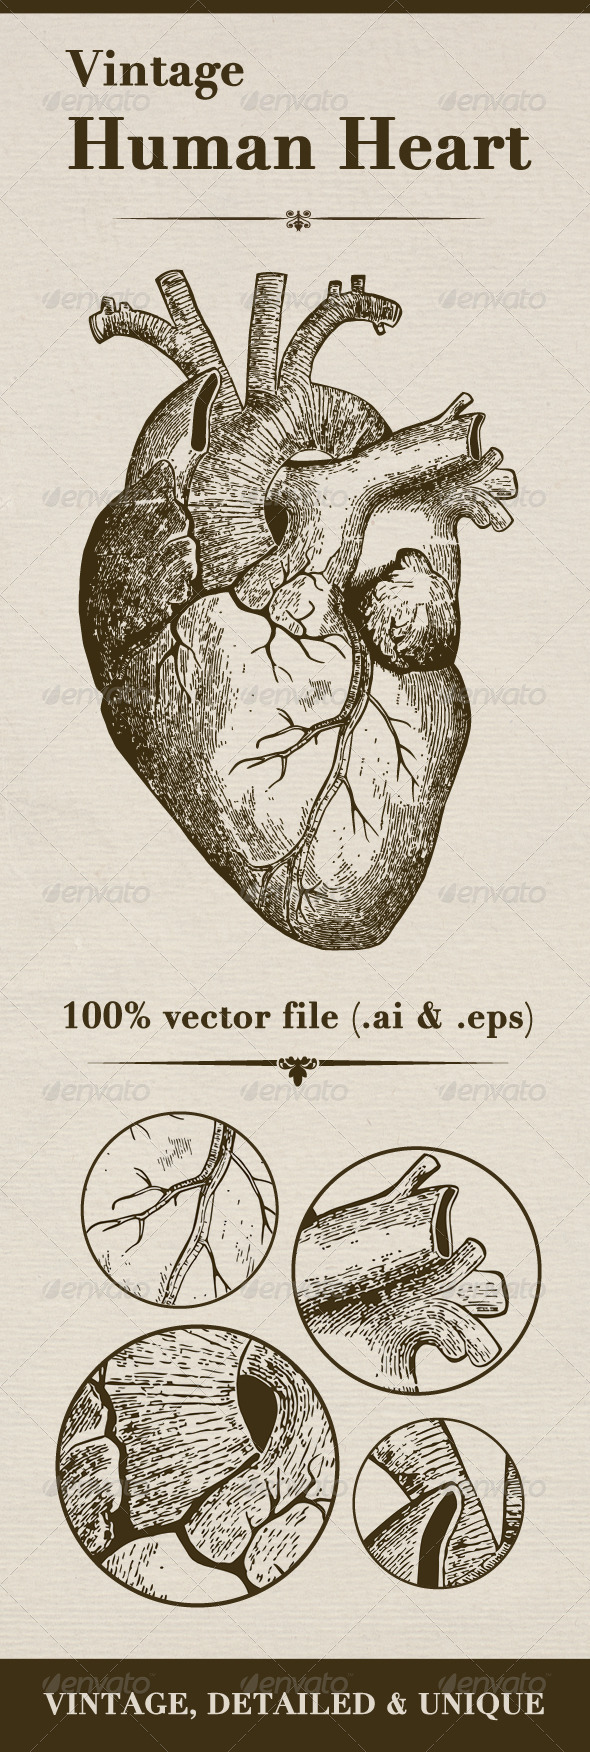 Vintage Human Heart - Objects Vectors